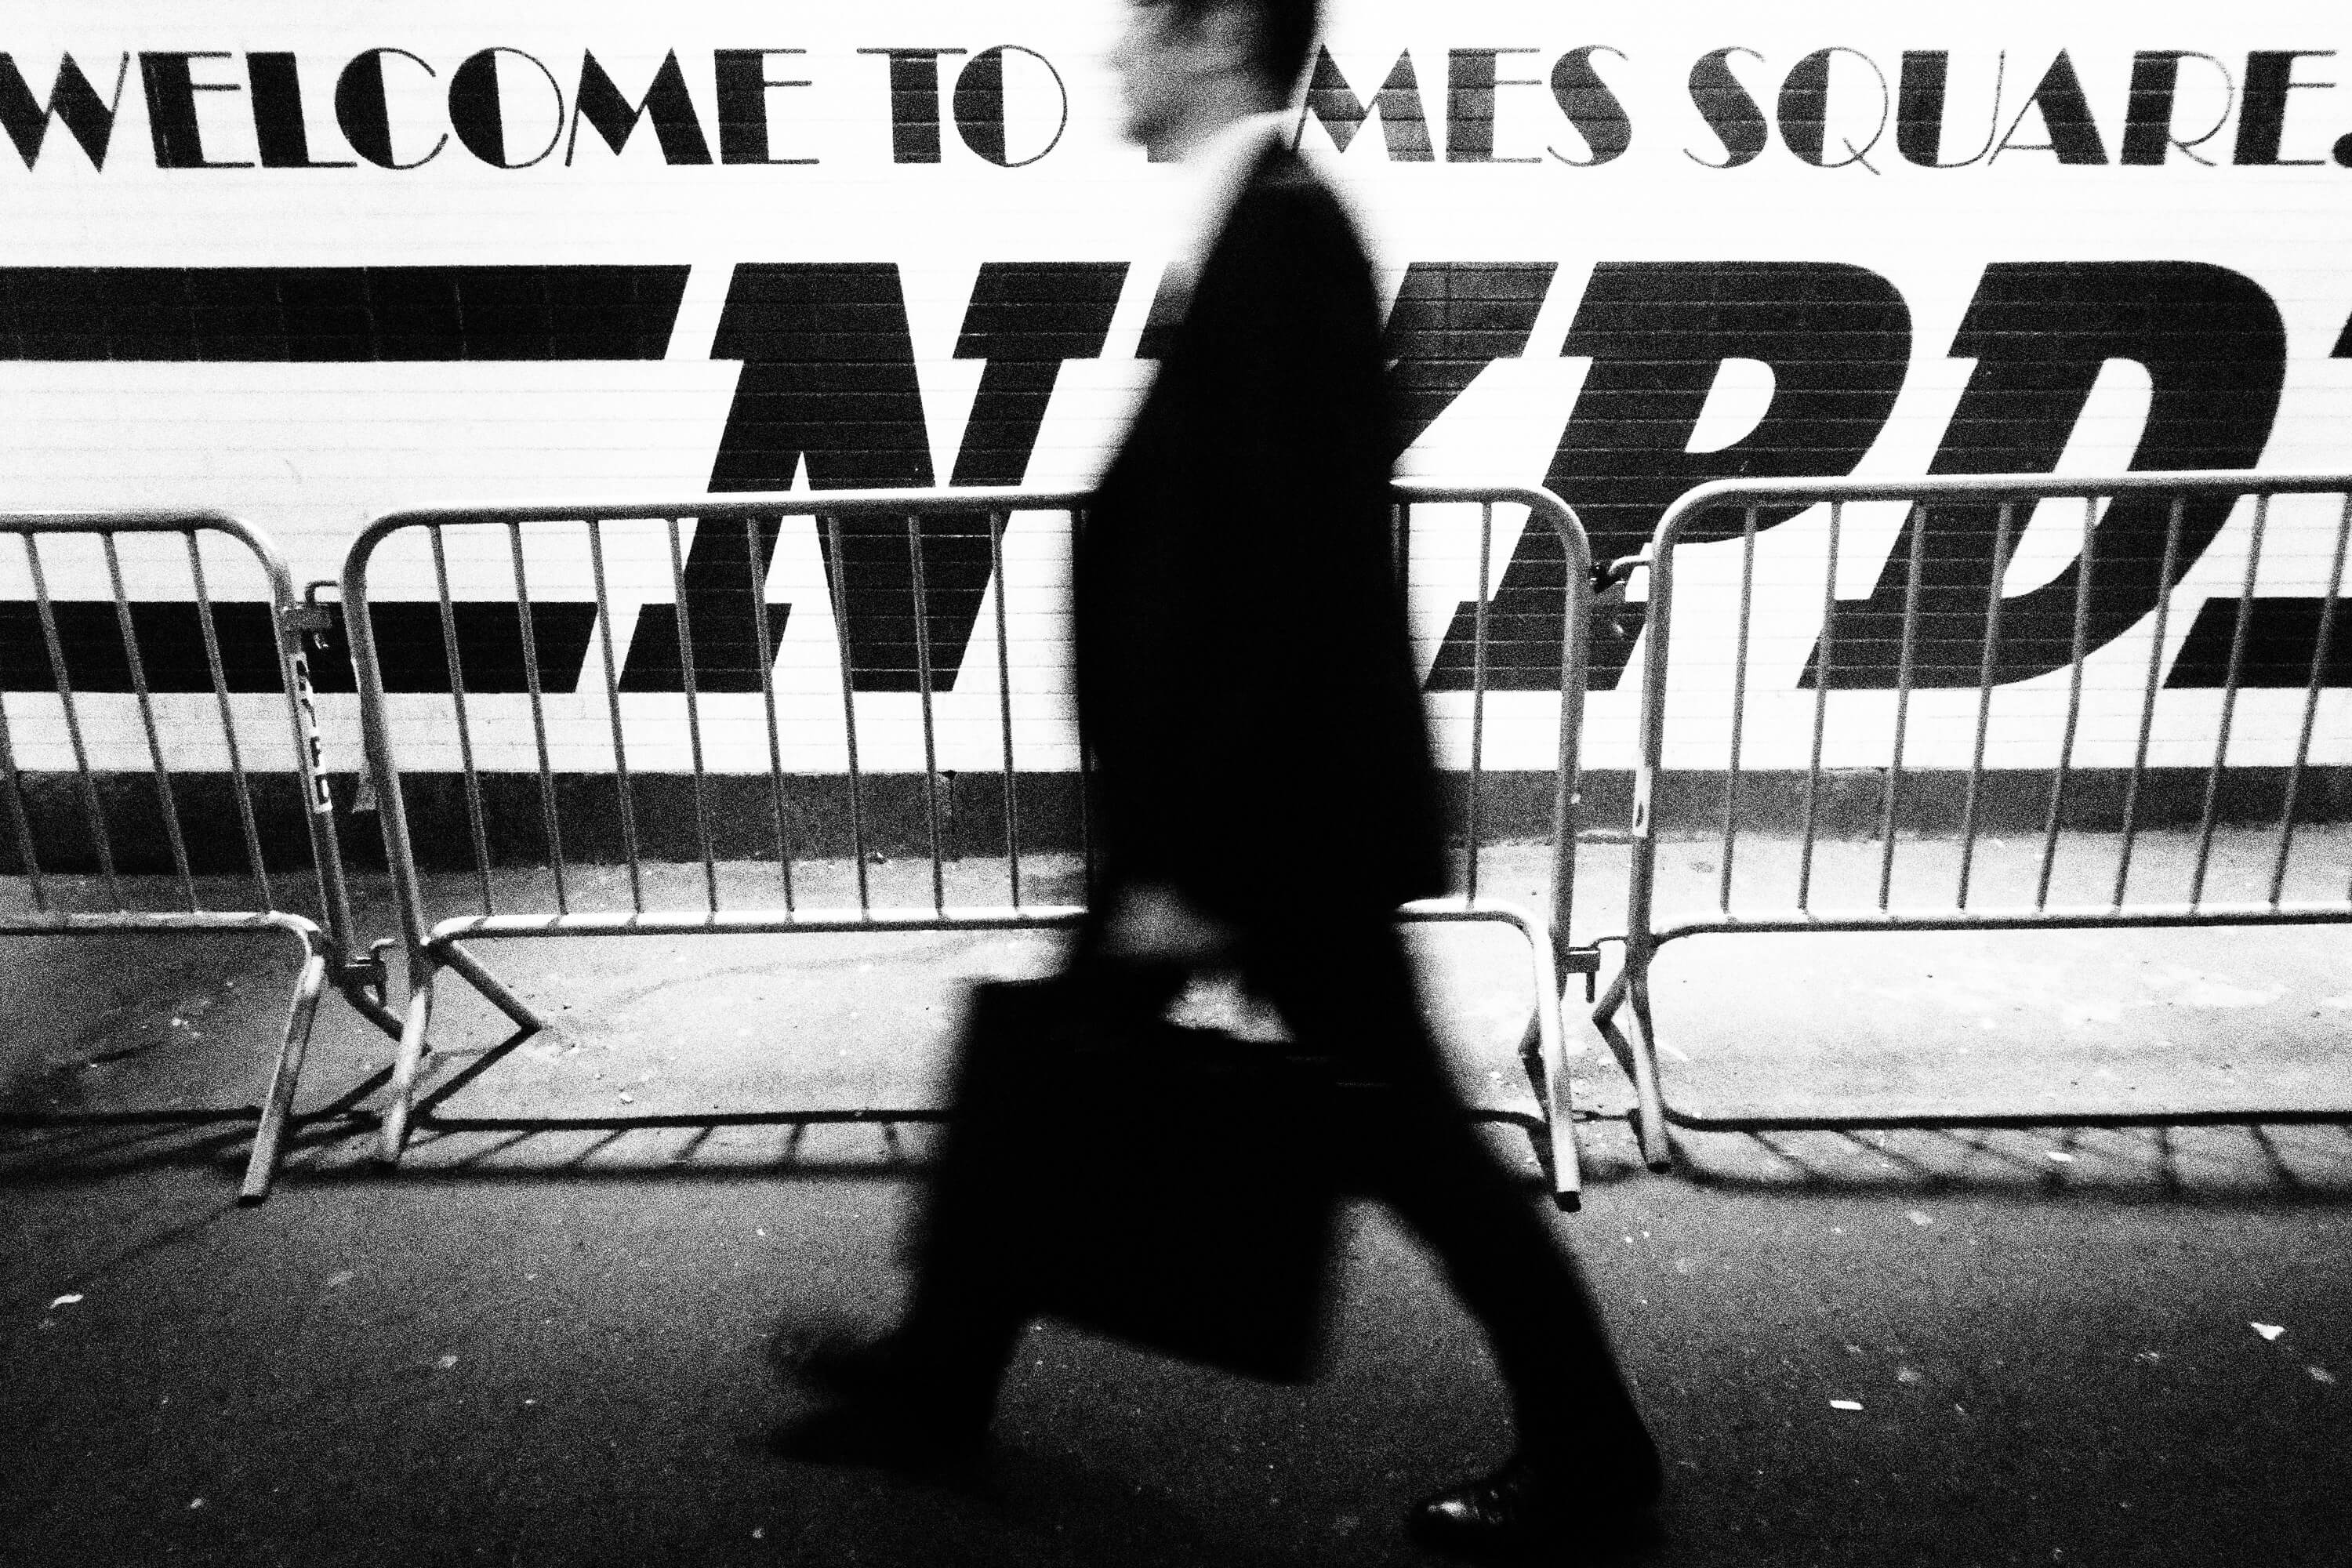 Welcome to Times Square NYPD, Olympus Tough Grainy Film Street Photography